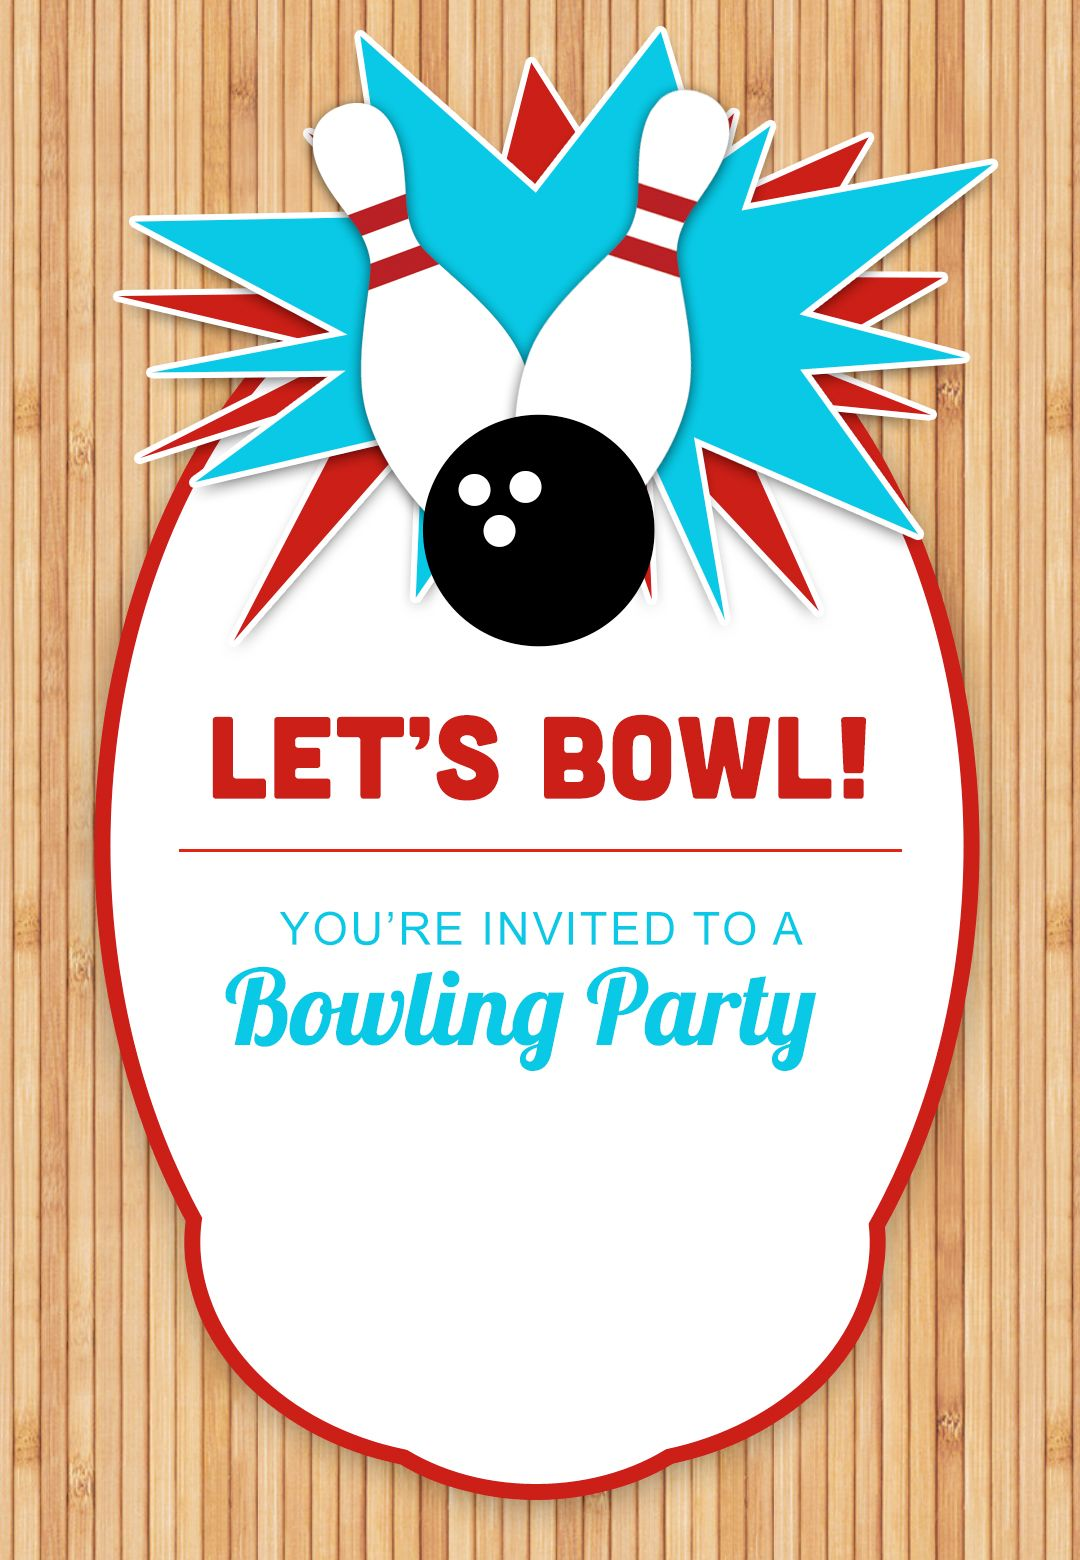 Bowling party flyer template selol ink bowling party flyer template stopboris Image collections